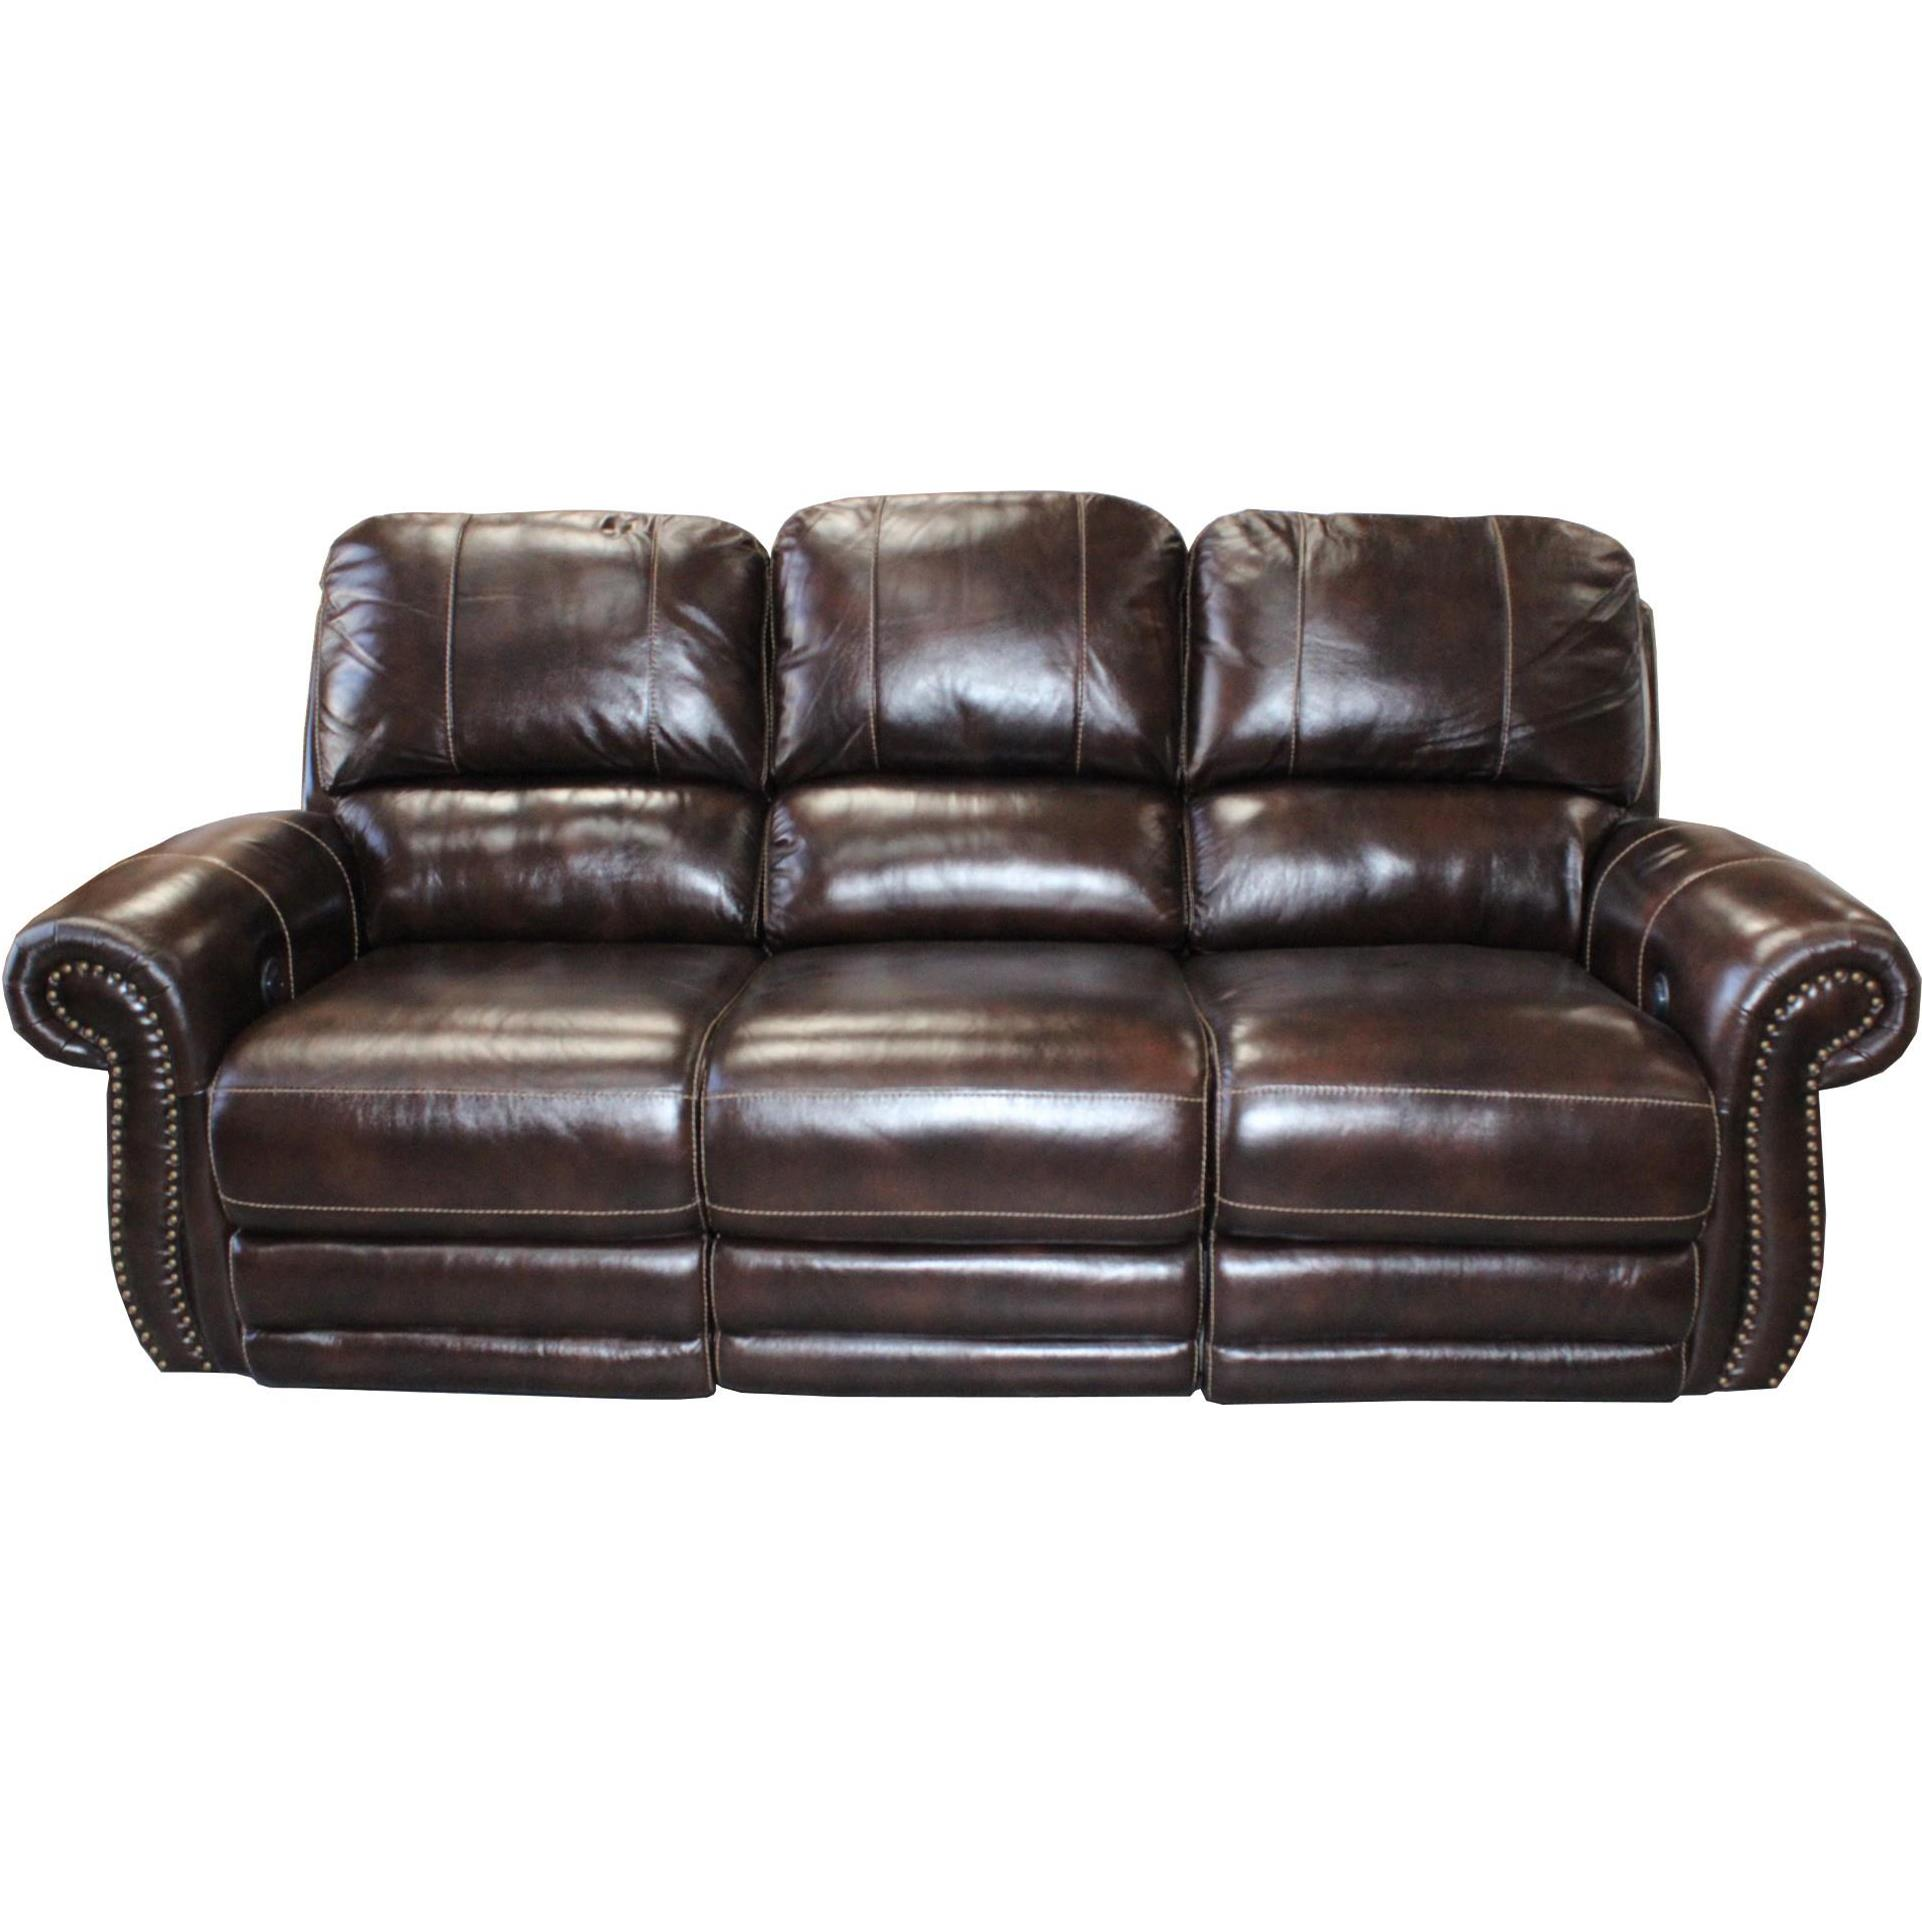 Thurston Traditional Power Reclining Sofa by Parker Living at Simply Home by Lindy's